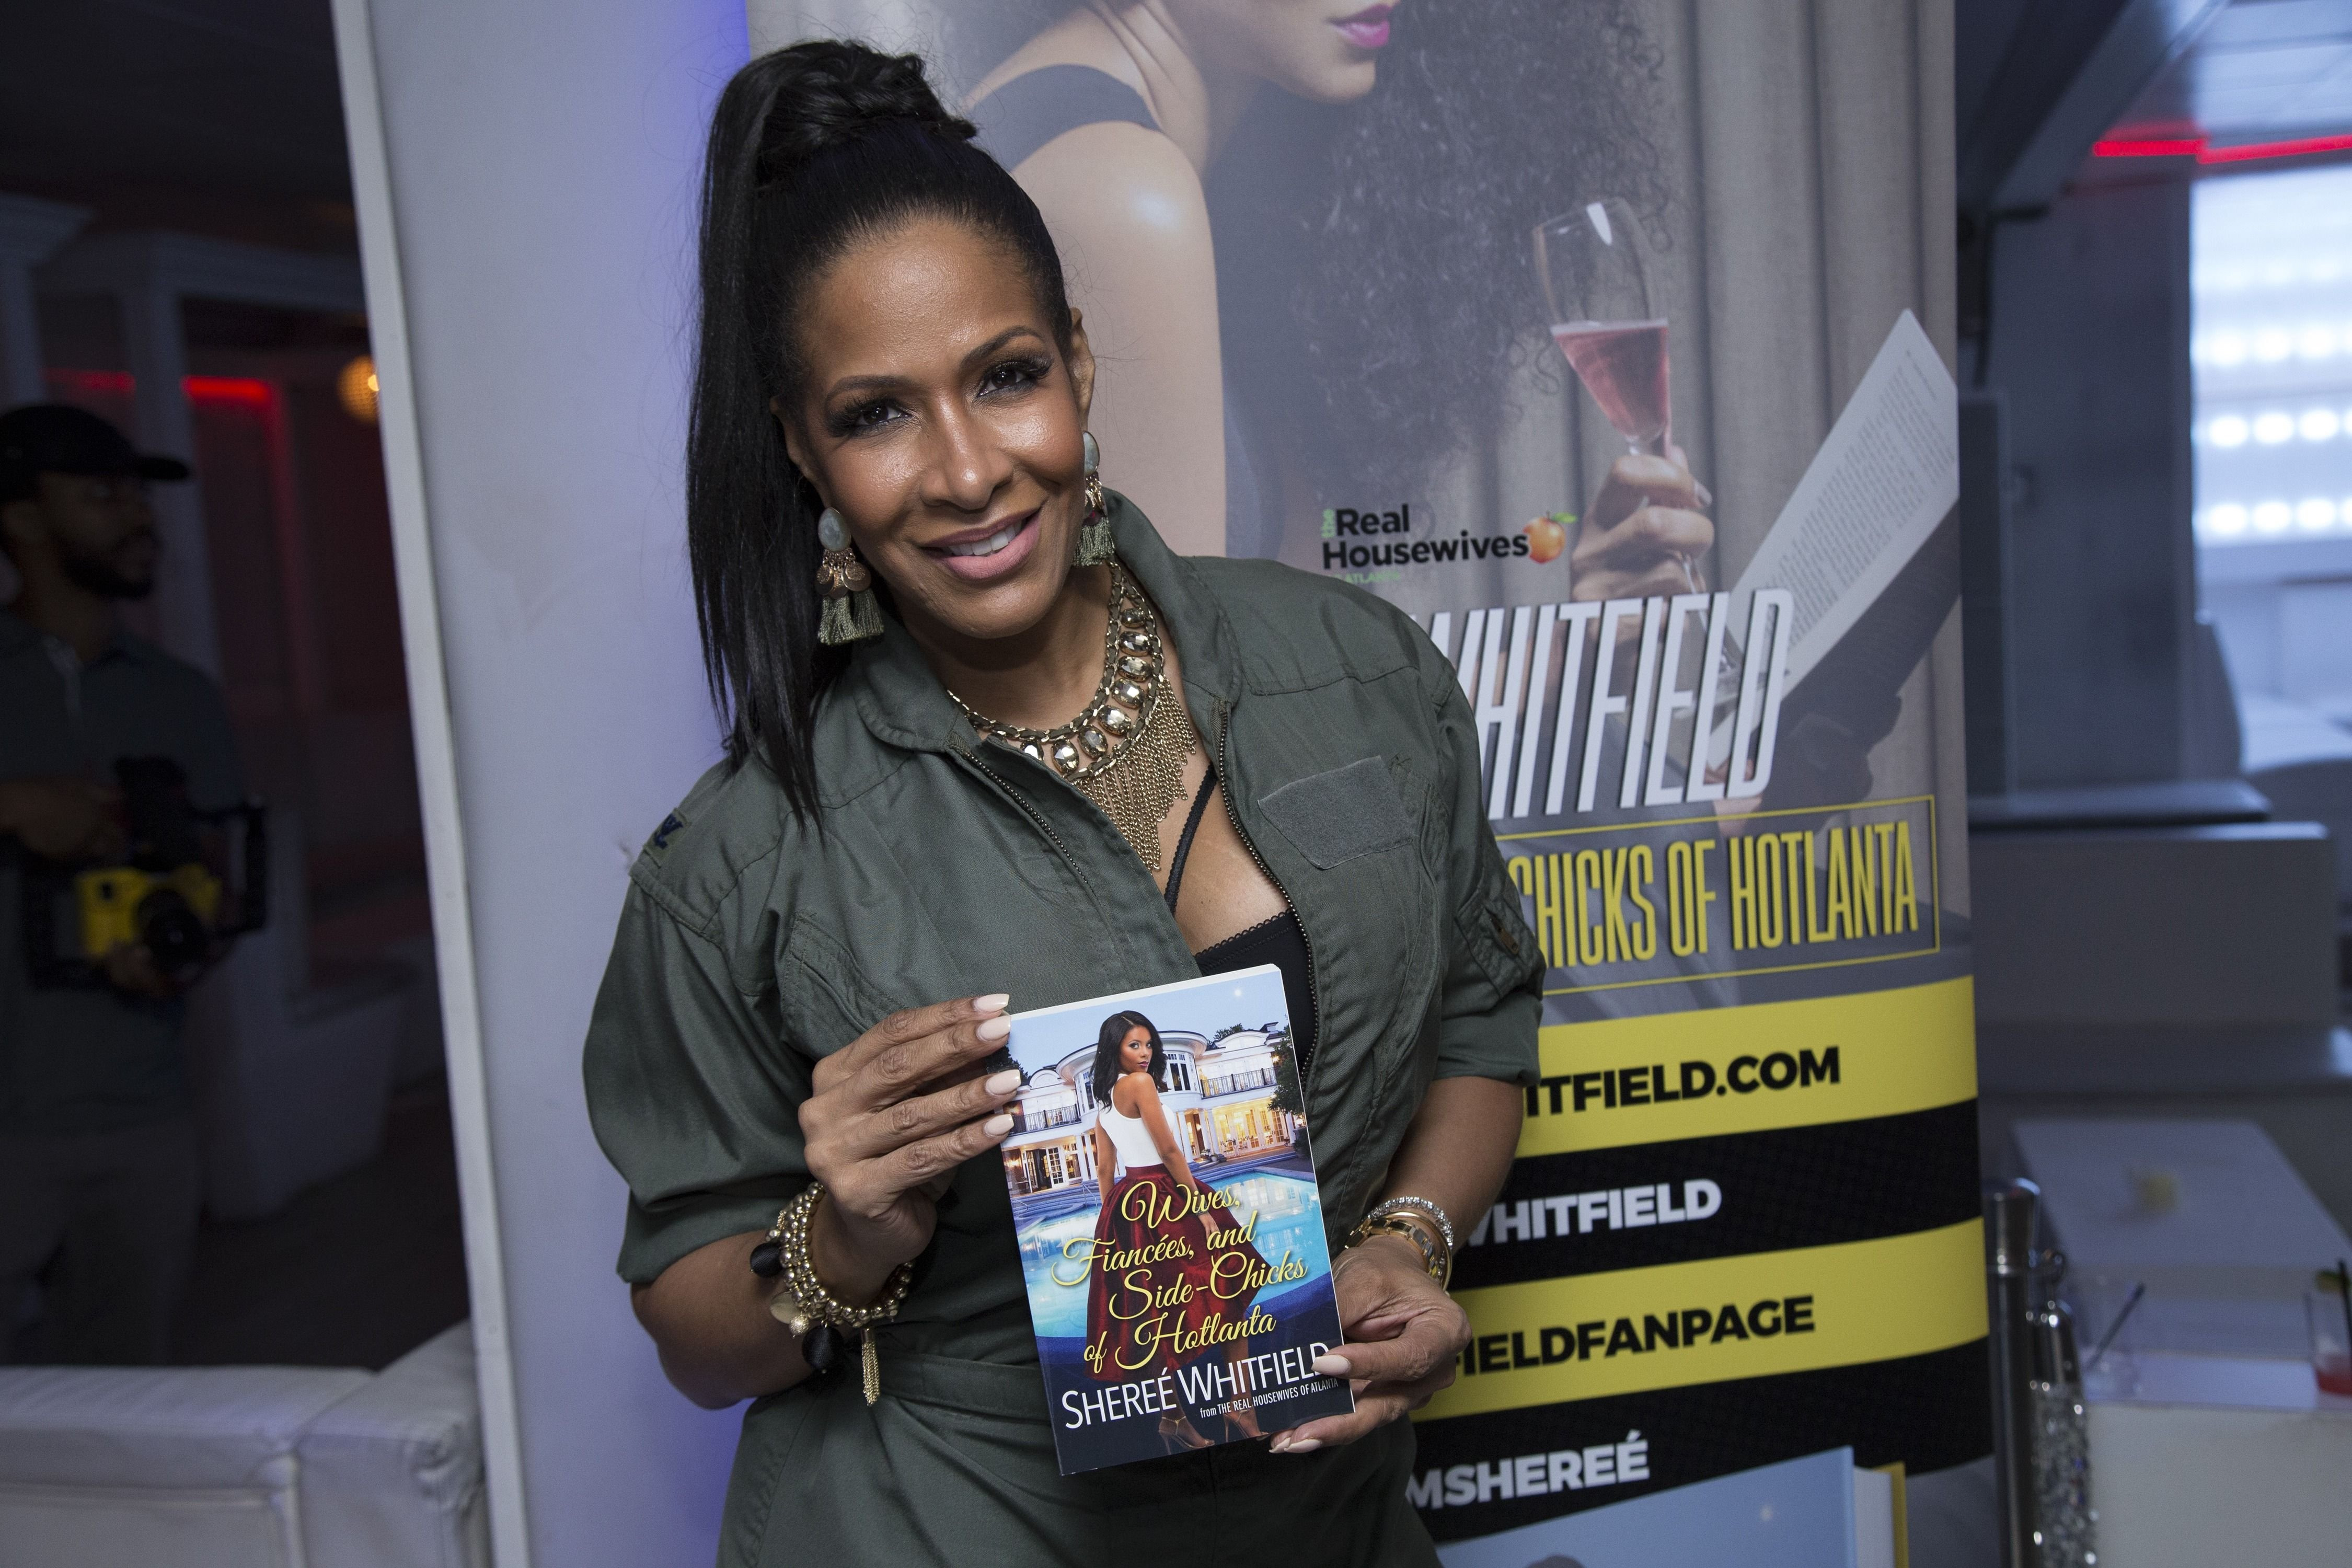 """Sheree' Whitfield at an event for her book """"Wives, Fiancees and Side-Chicks of Hotlanta"""" in  2017 in Washington, D.C. 